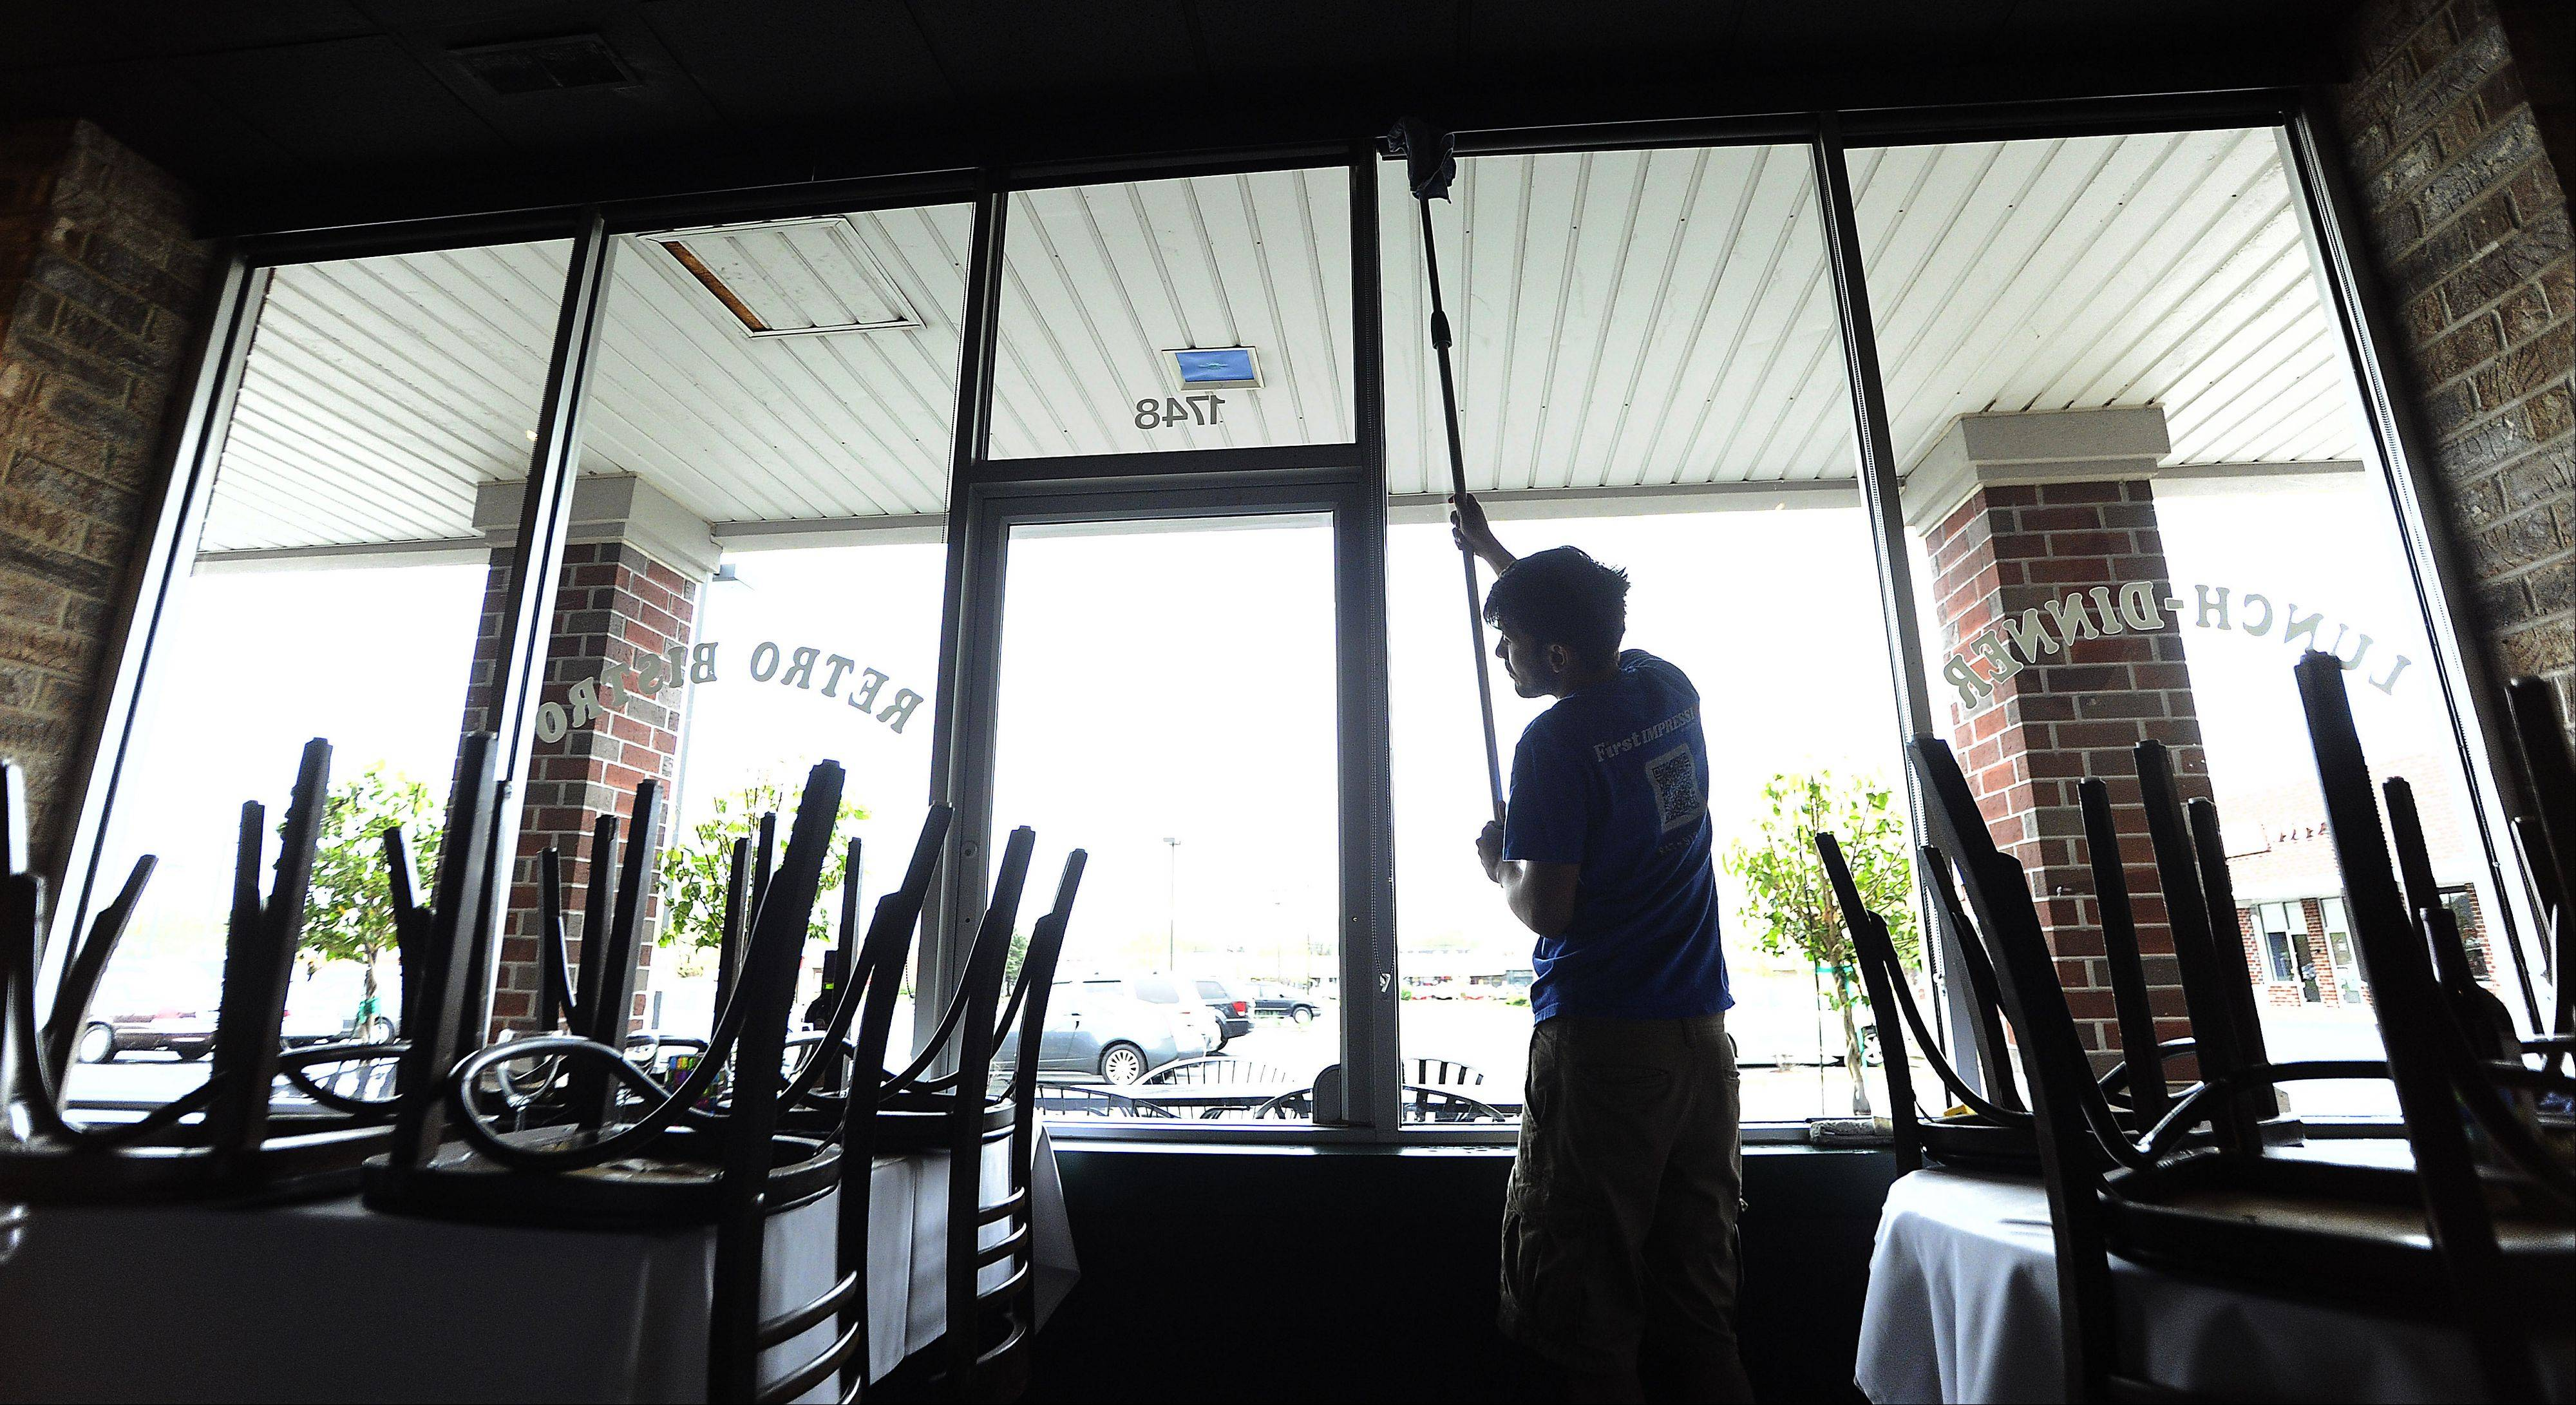 Virgil Pop, 27, of Prospect Heights cleans the inside windows at a Mount Prospect restaurant. He uses a towel at the end of a pole to wipe off the excess water on the ledge.